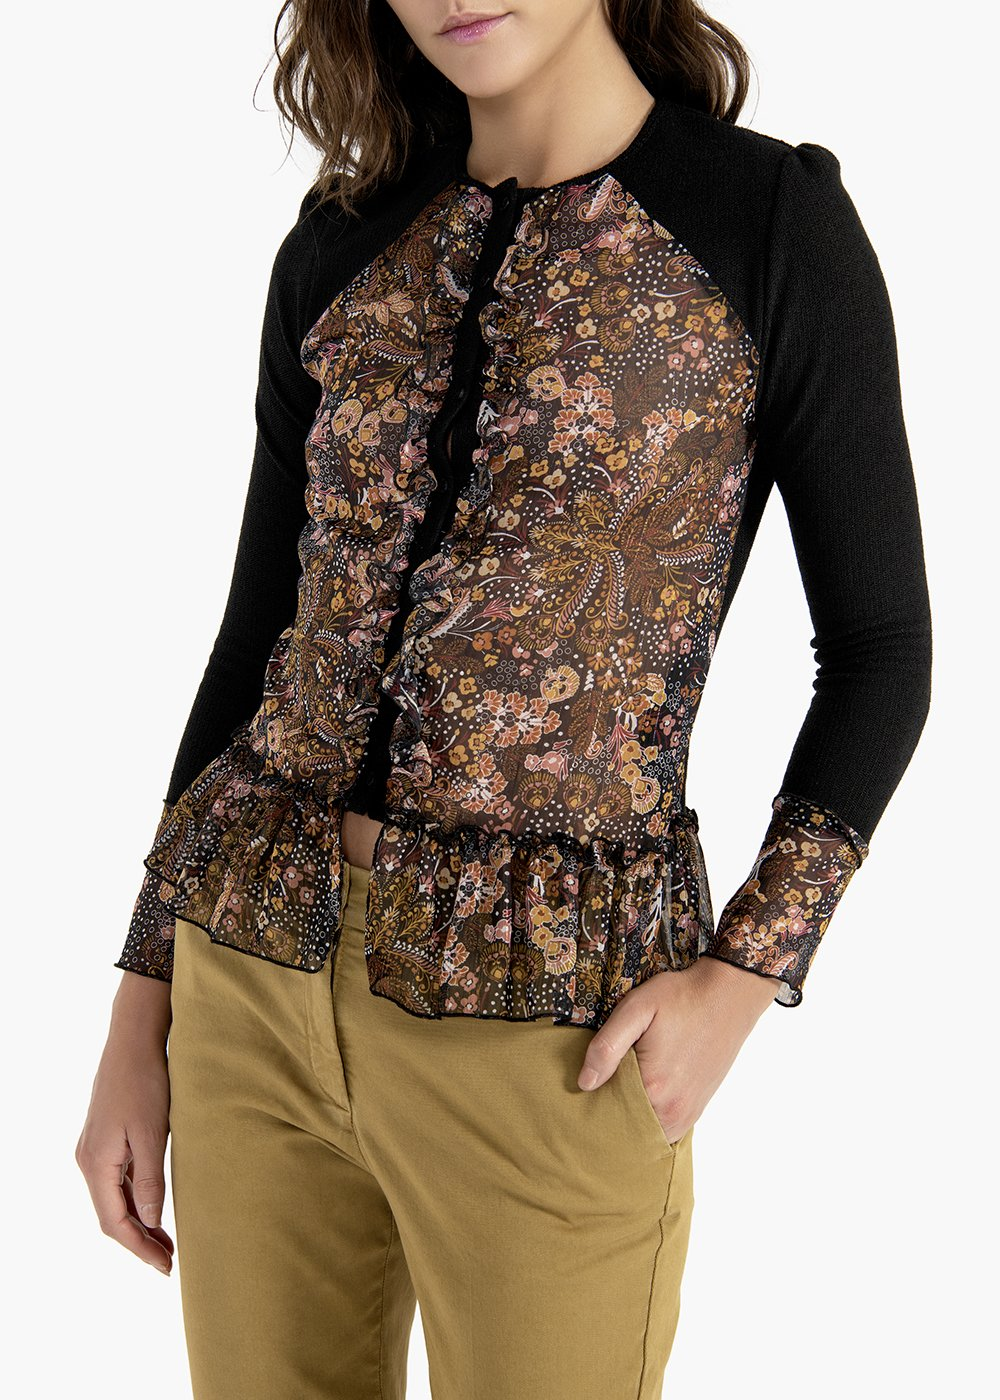 Clio cashmere and floral print cardigan - Black / Miele Fantasia - Woman